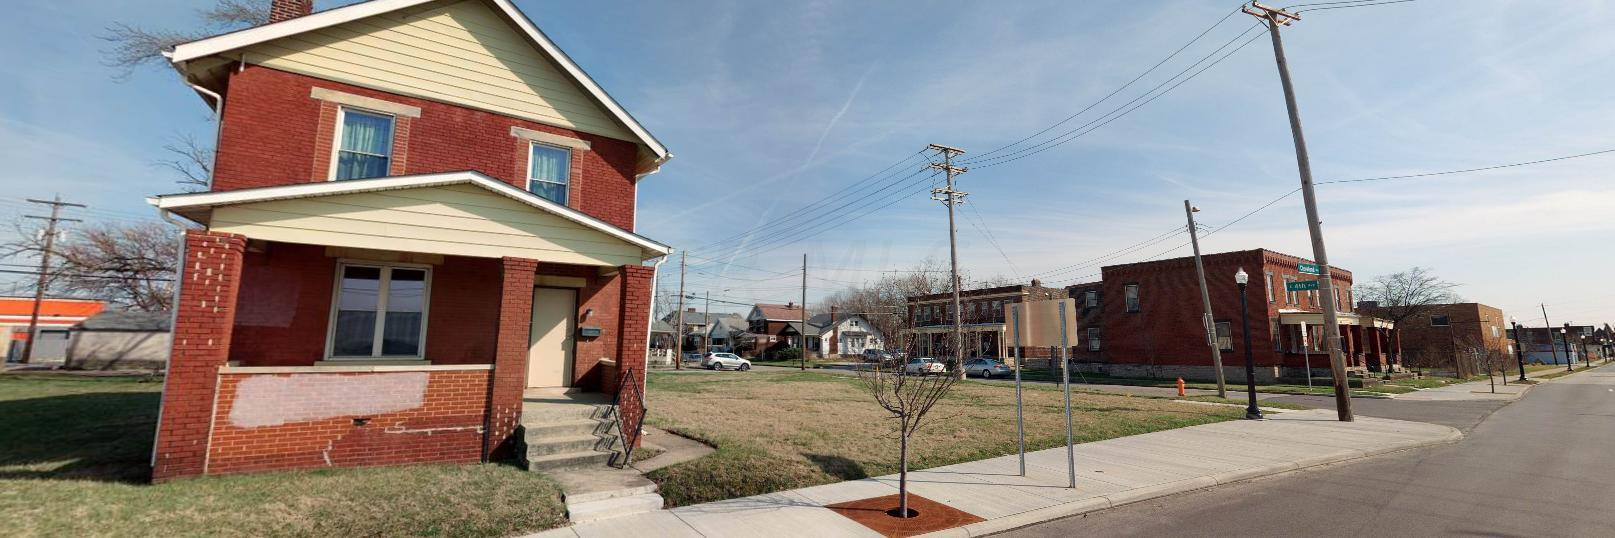 1060 Cleveland Avenue, Columbus, Ohio 43201, 3 Bedrooms Bedrooms, ,1 BathroomBathrooms,Residential,For Sale,Cleveland,219022061